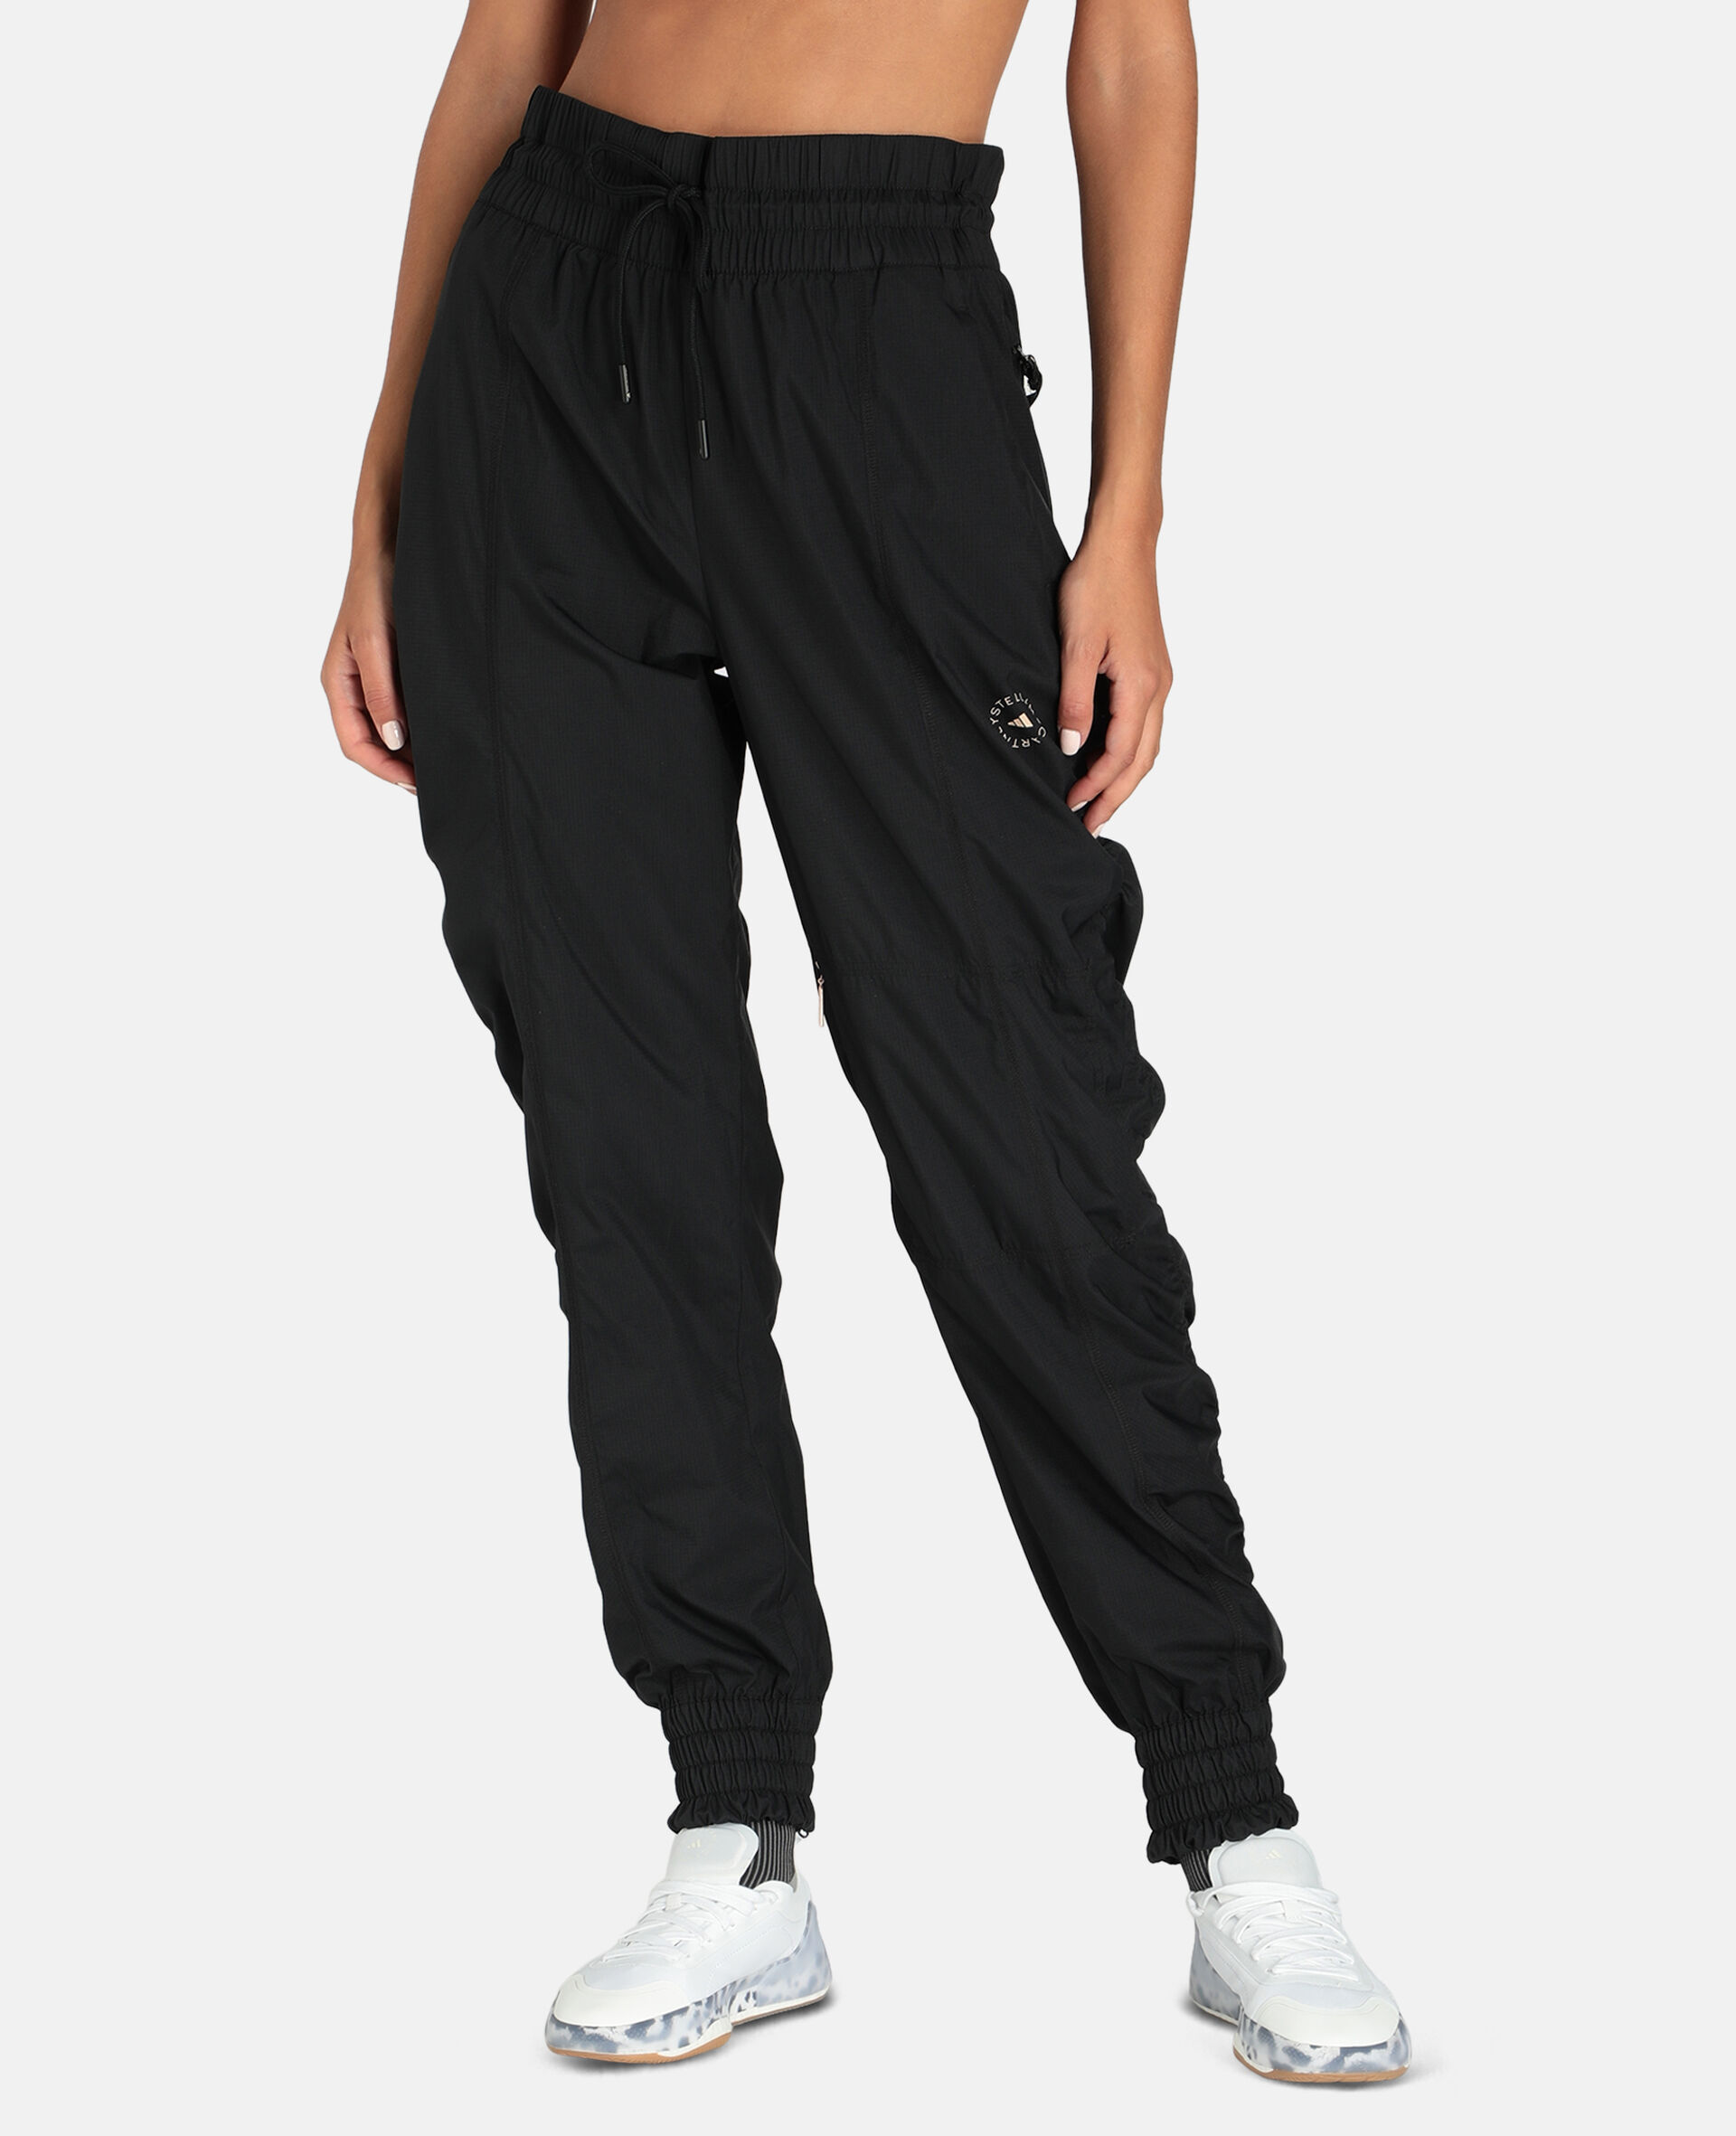 Black Woven Training Pants-Black-large image number 4